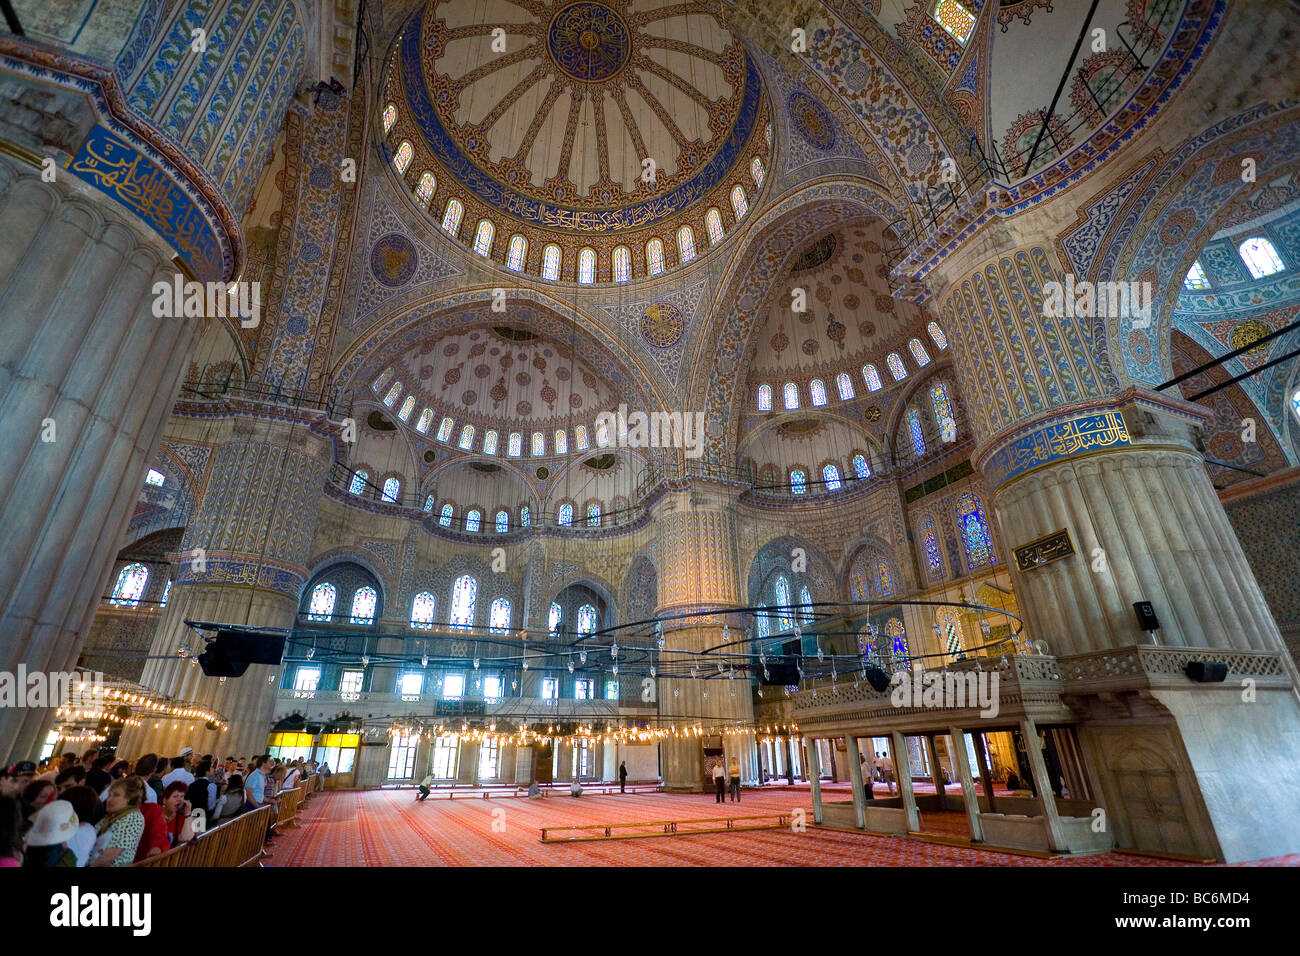 The interior of the Blue Mosque Sultan Ahmet Camii Istanbul Stock Photo, Roya...